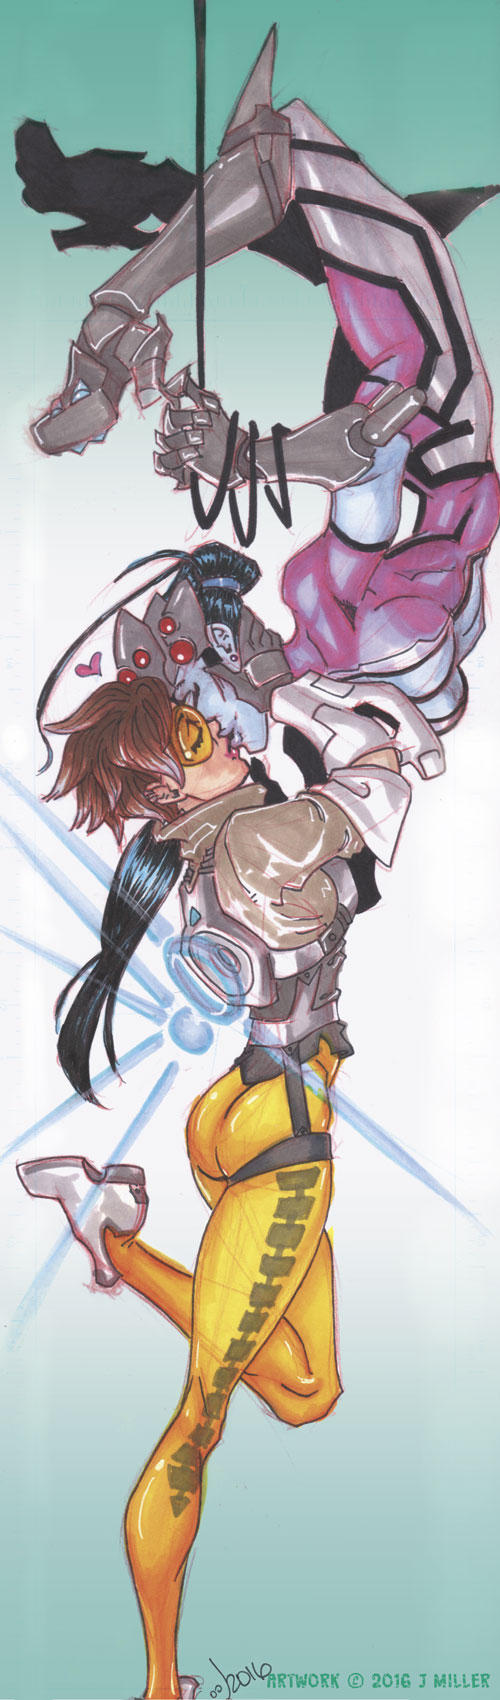 Overwatch WidowTracer by LordSantiago